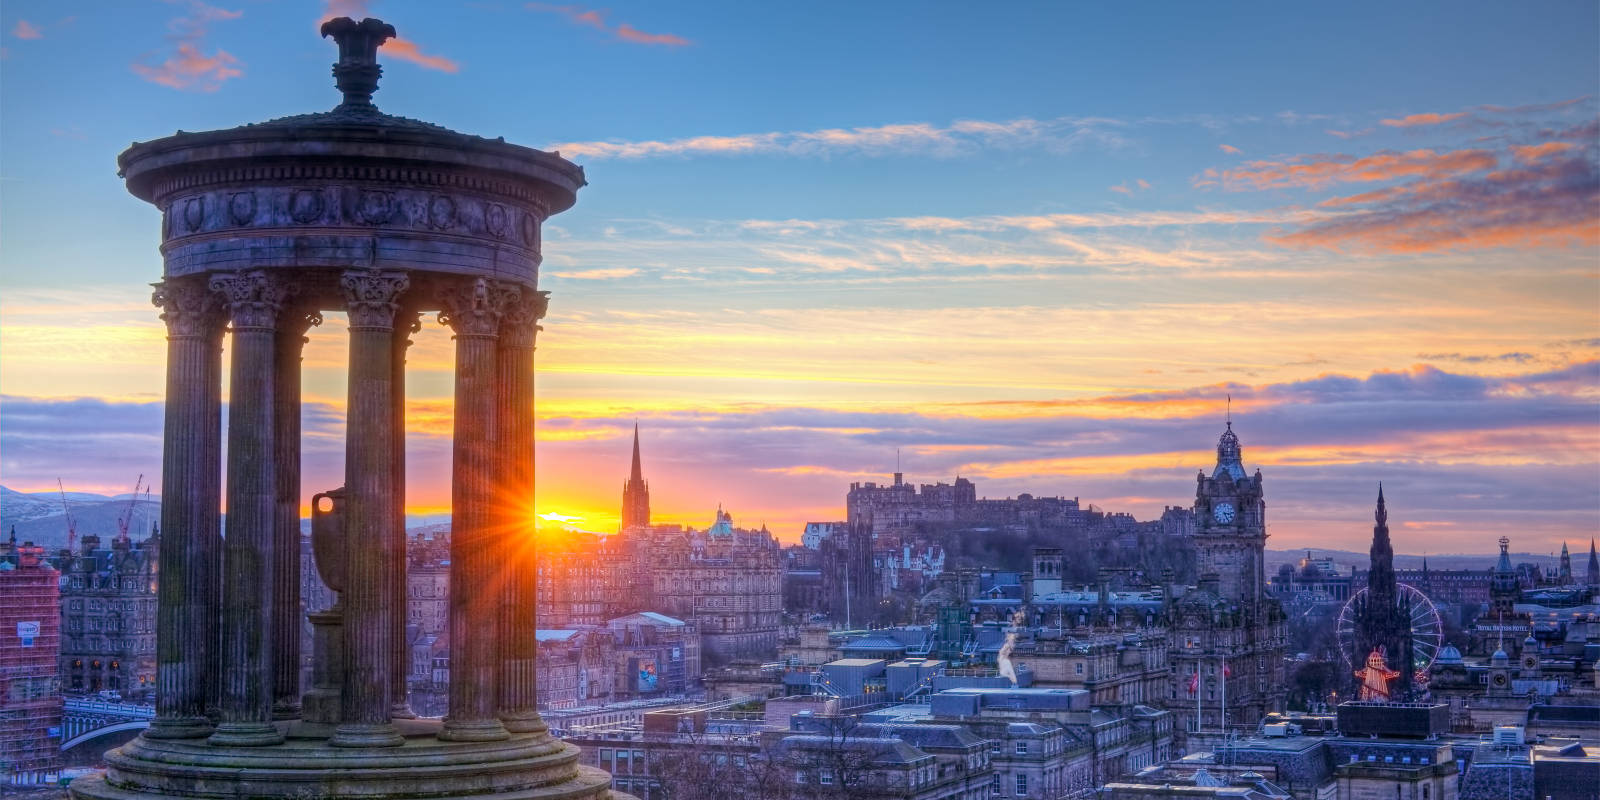 View of Edinburgh from Calton Hill at sunset